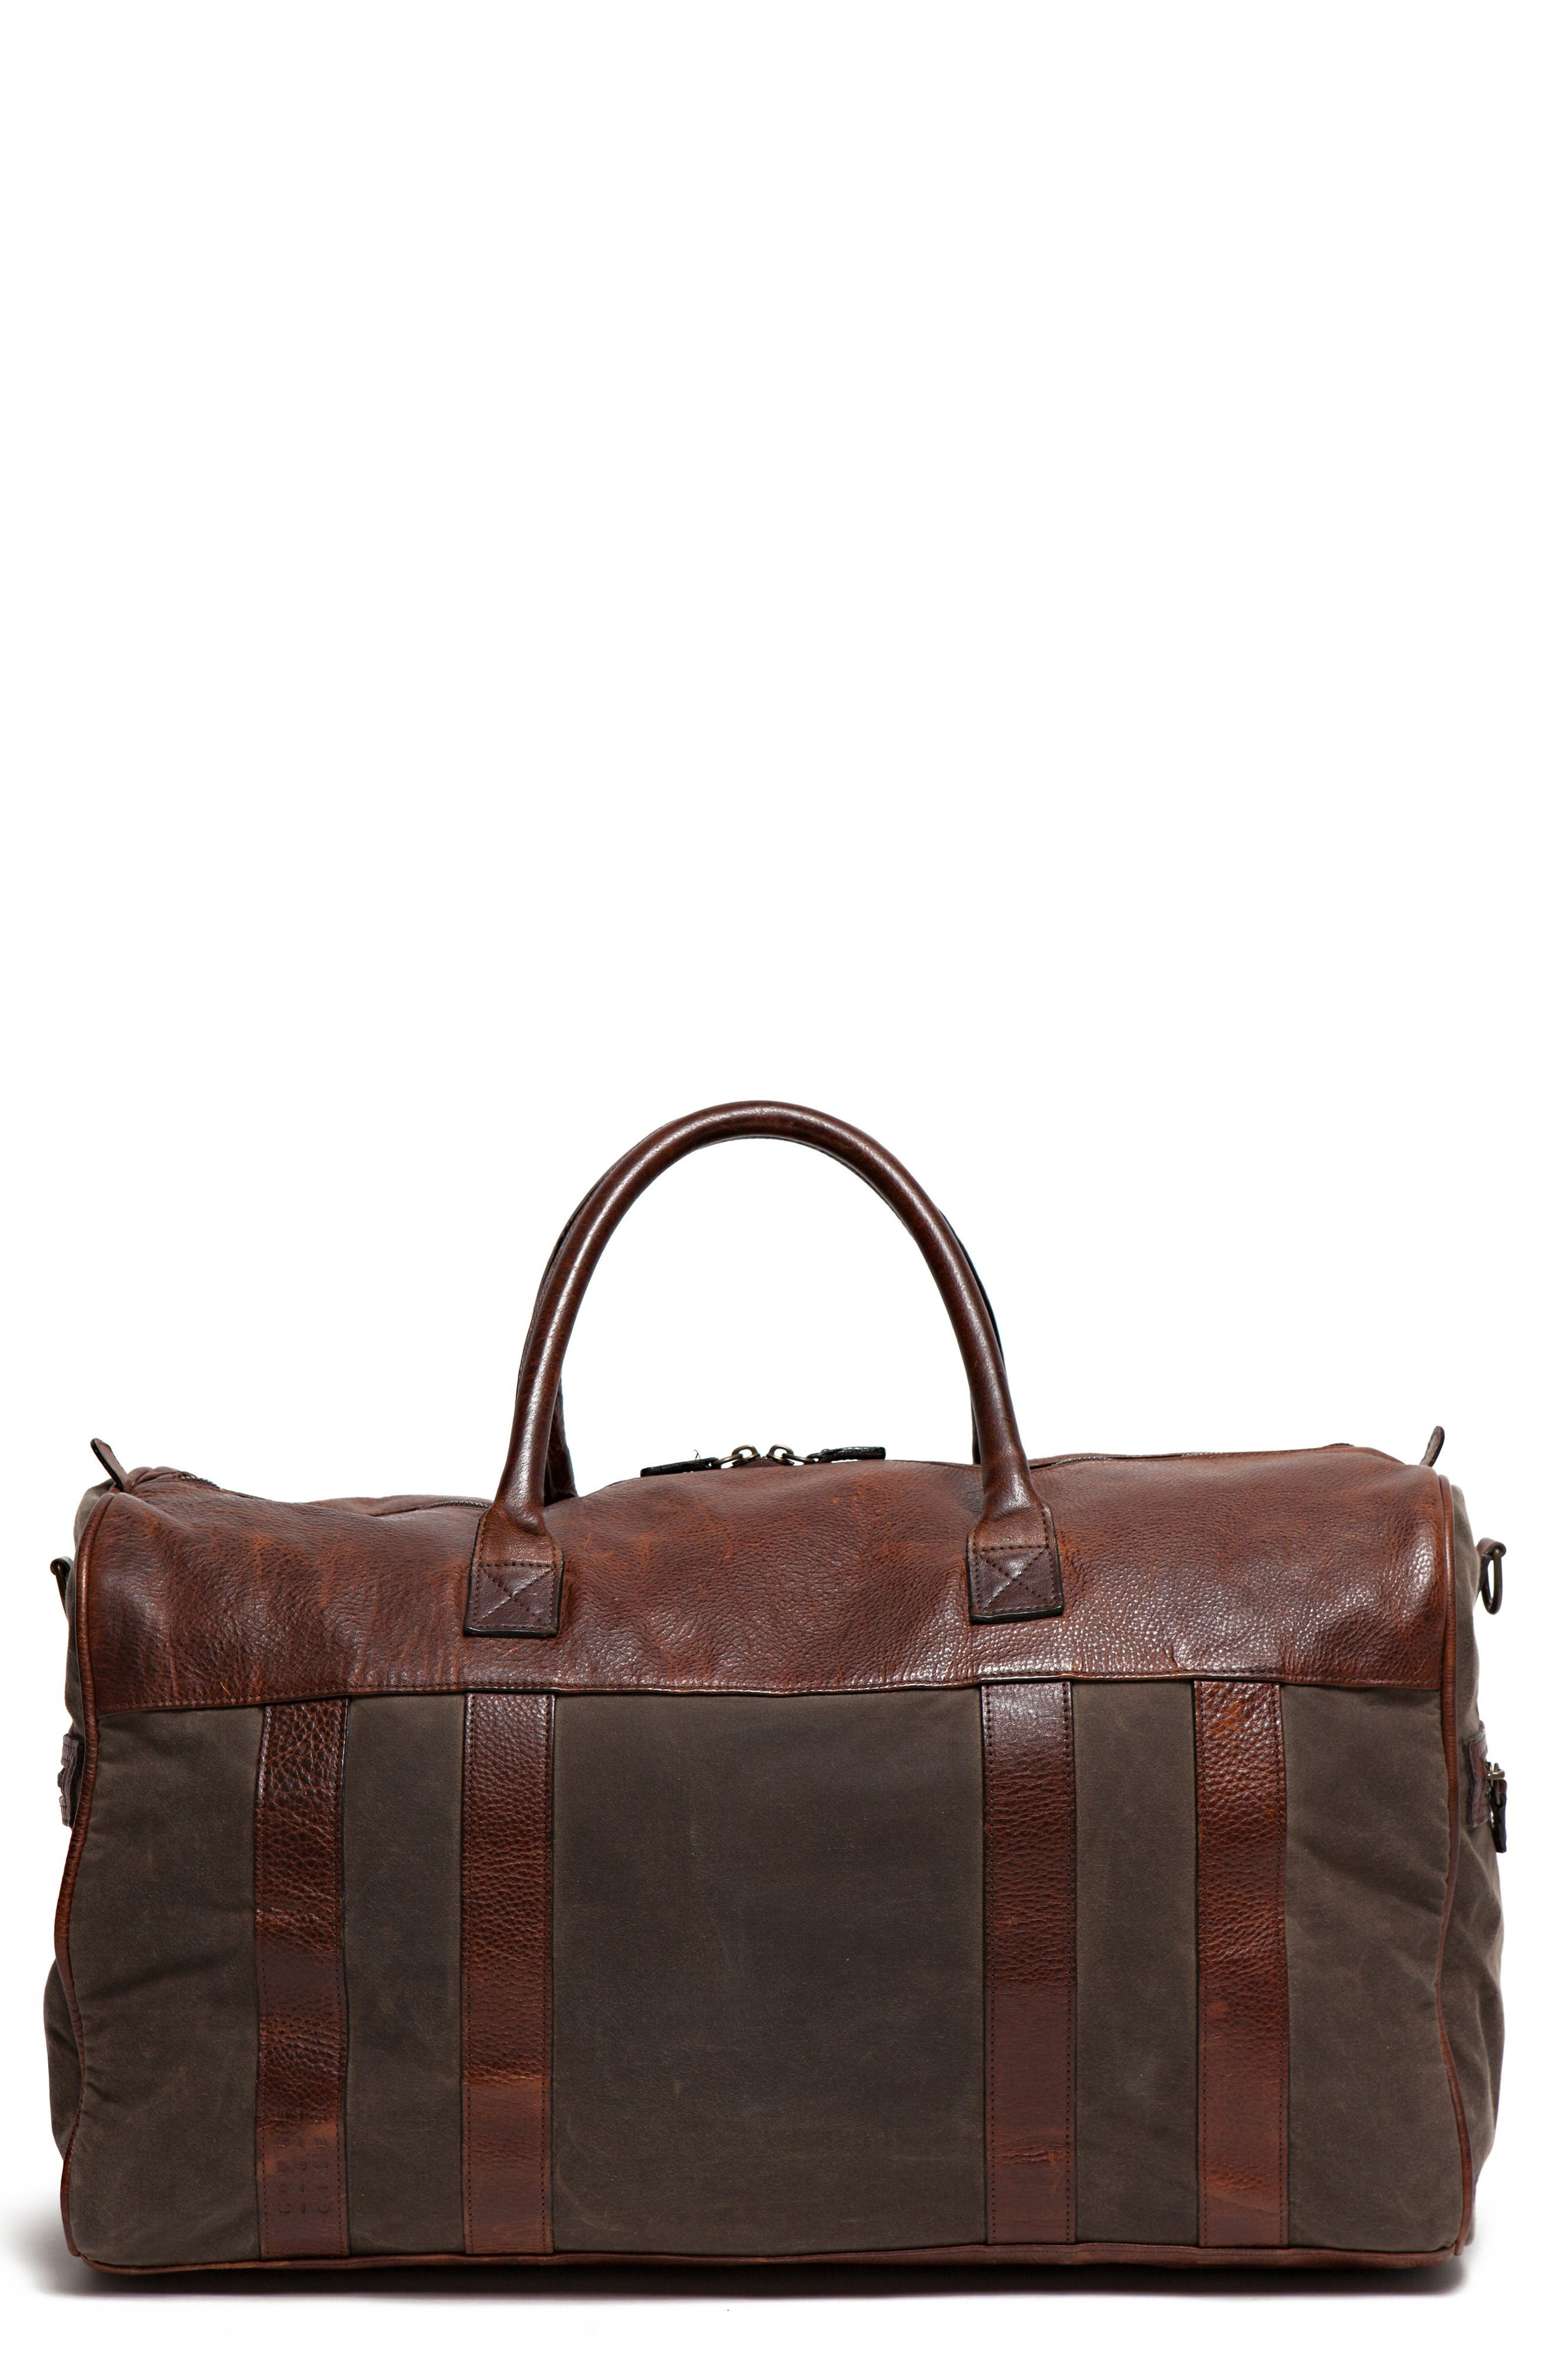 Cleland XL Duffel Bag,                             Main thumbnail 1, color,                             Waxwear Rangertan